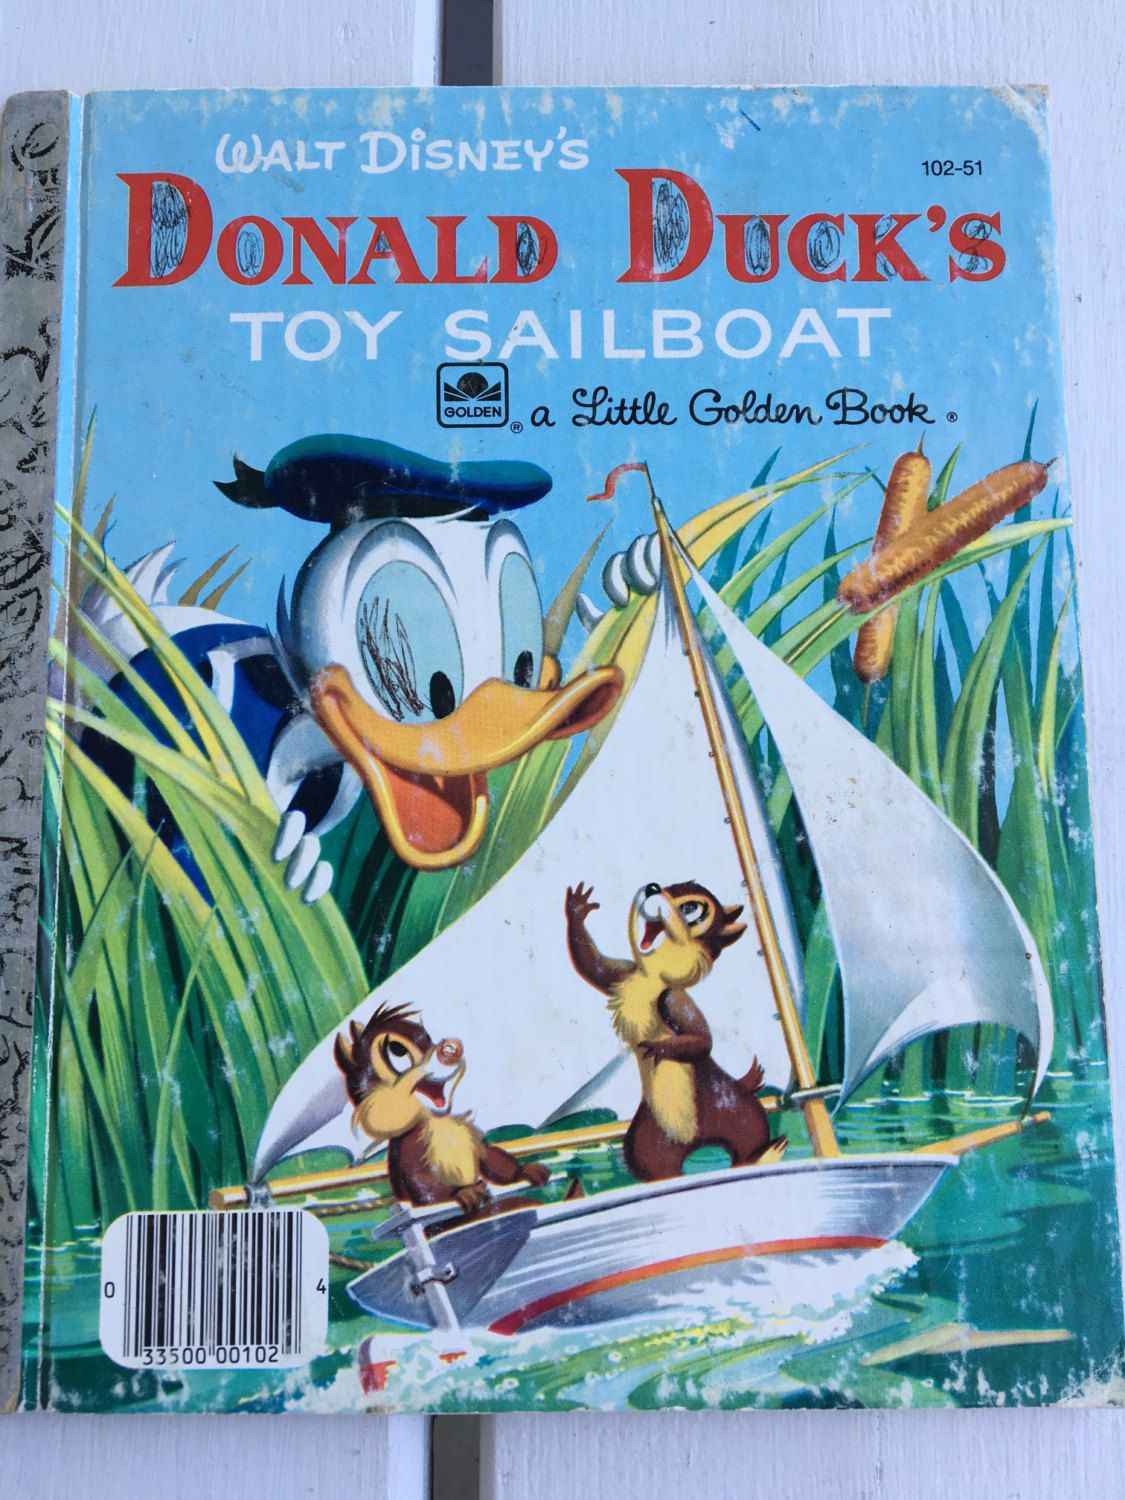 vintage Little Golden Book, Walt Disney's Donald Duck's Toy Sailboat, #102-51, 1956 edition by MotherMuse on Etsy